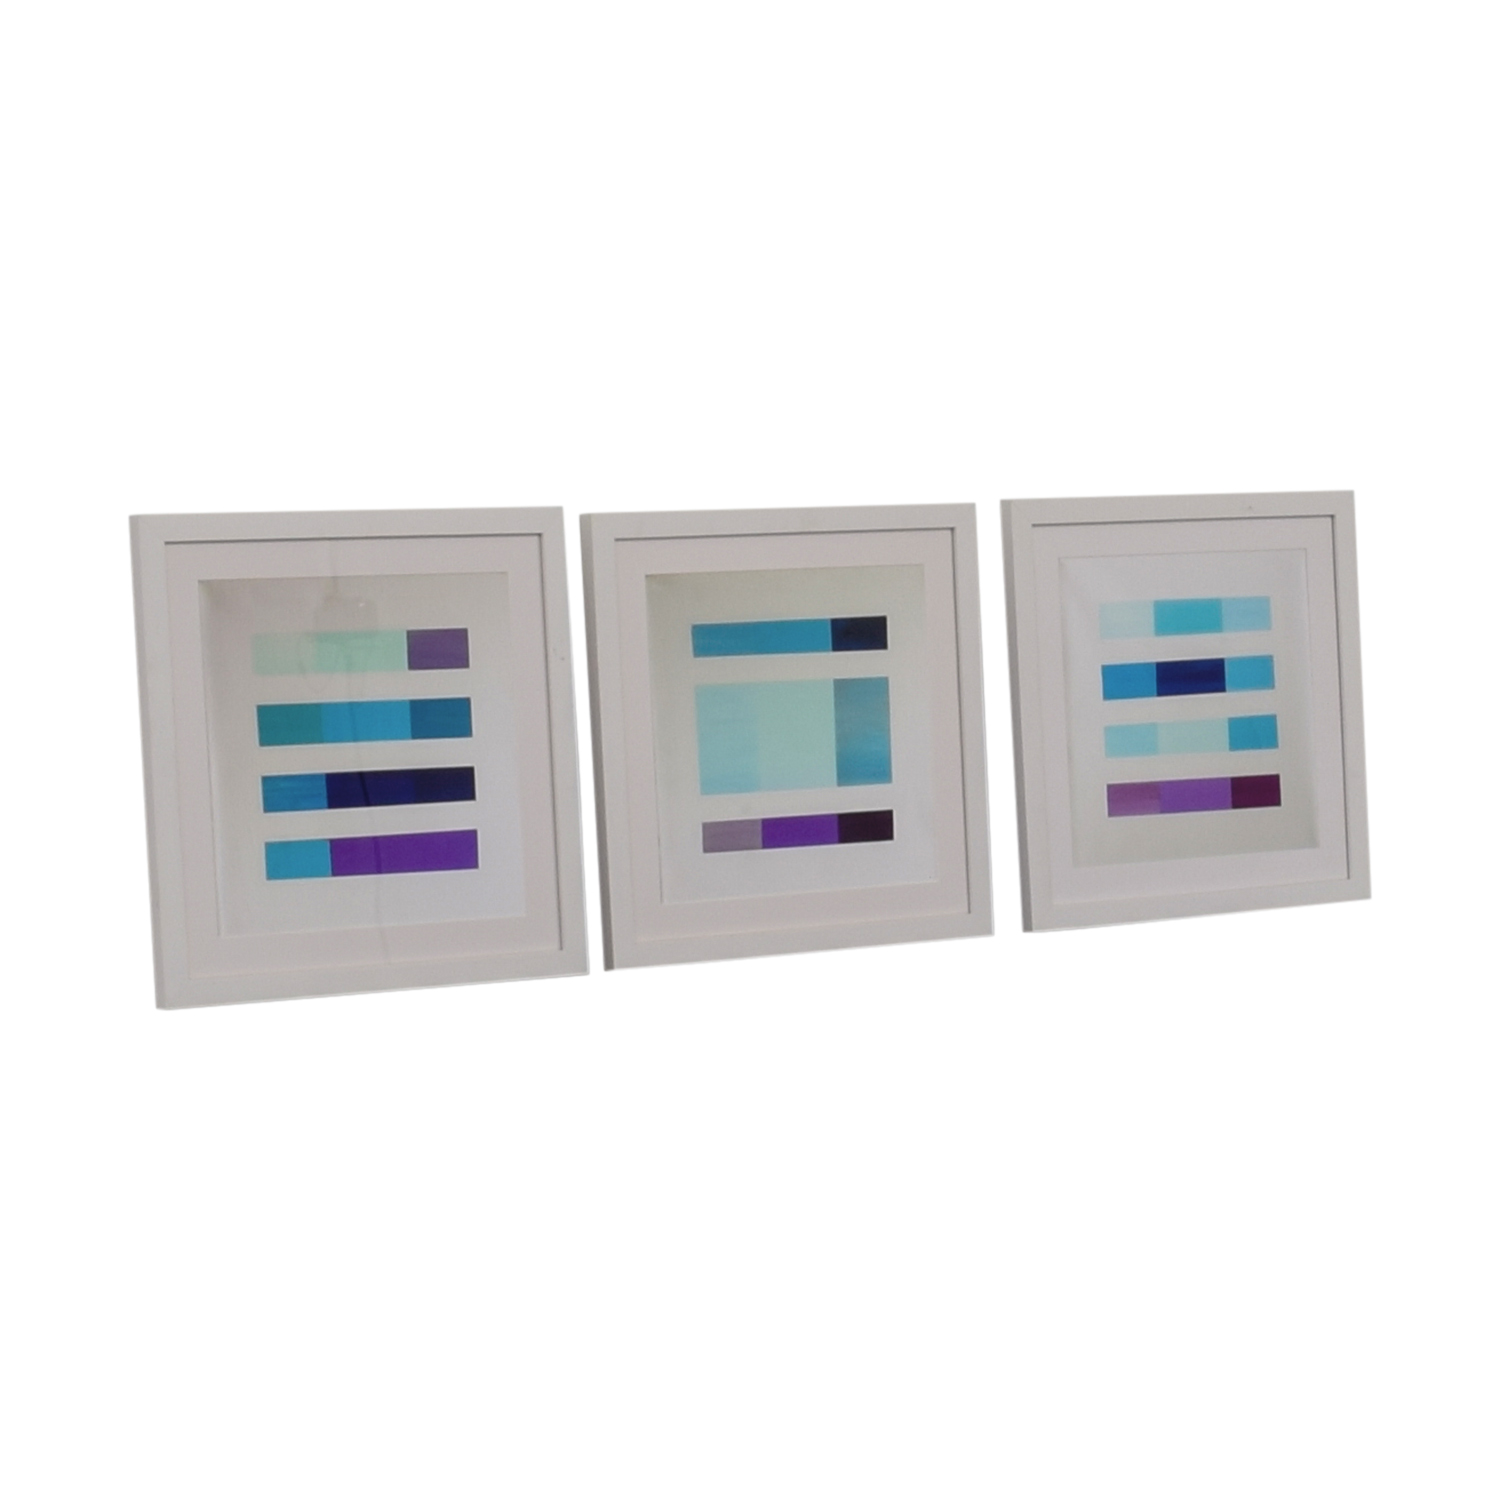 Castelli Castelli Purple and Blue Abstract Framed Prints on sale